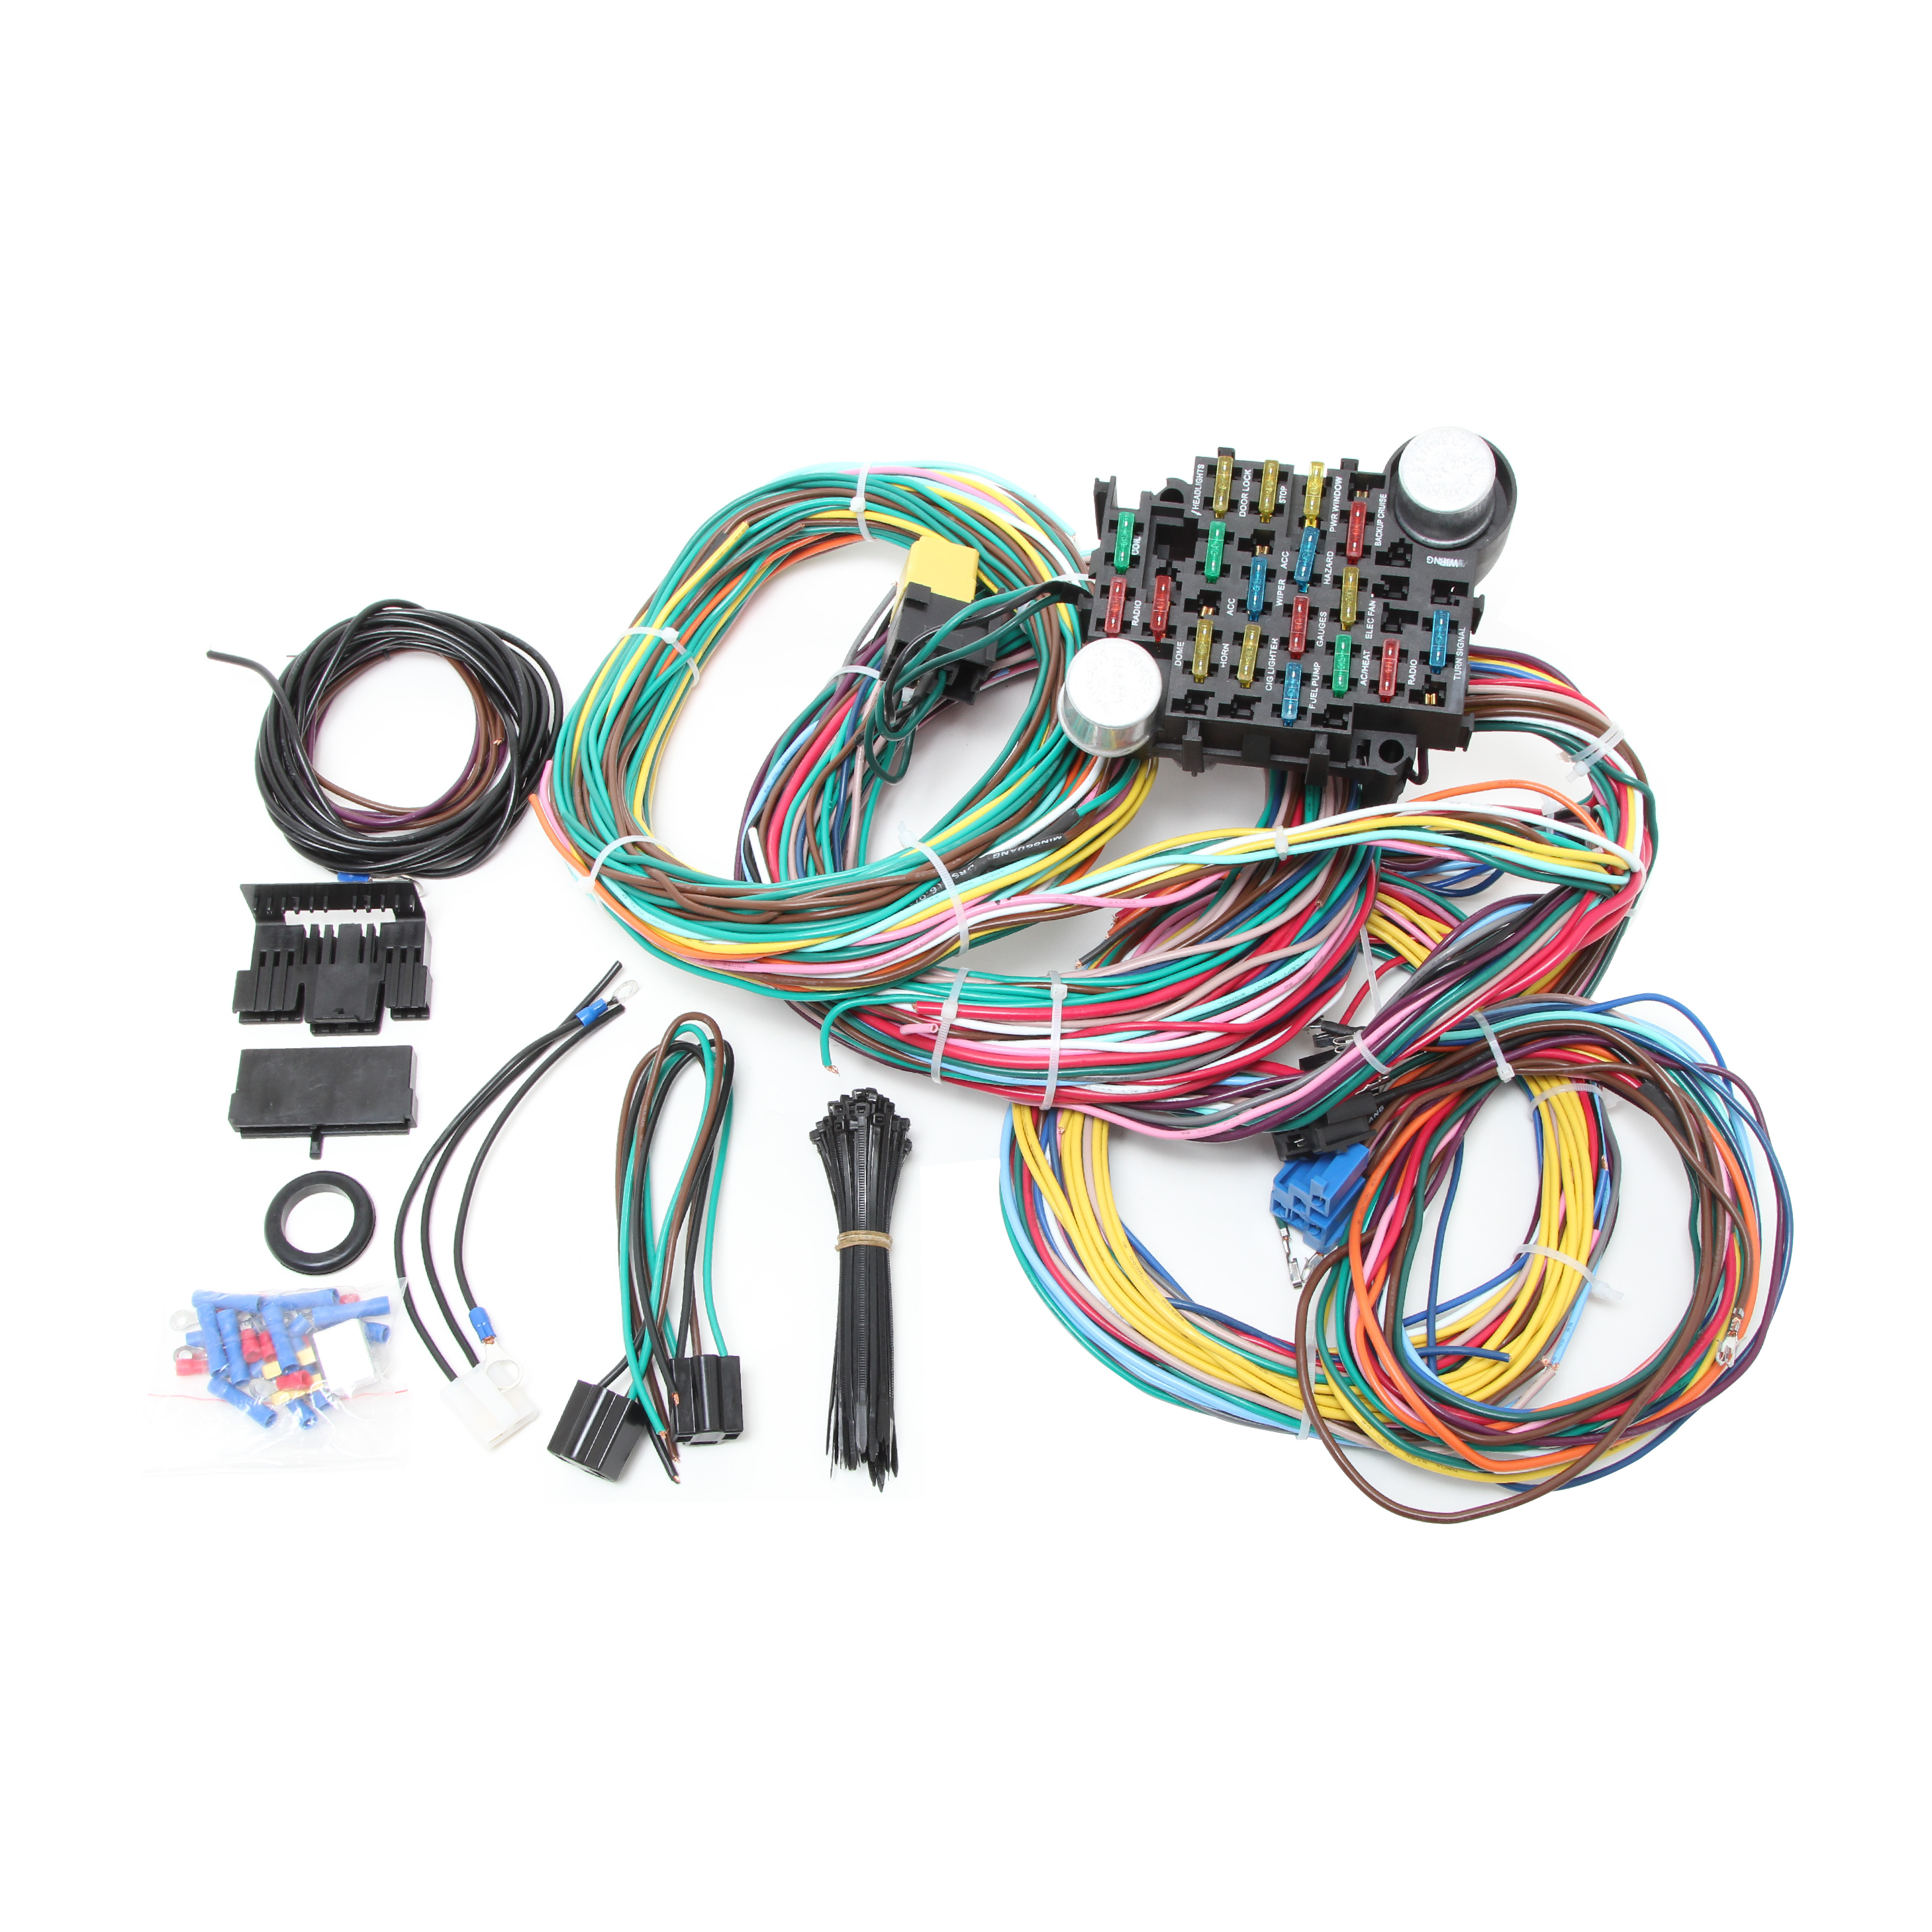 Universal Wiring Harness Kit - Owner Manual & Wiring Diagram on wire fire, wire electrical, wire code, wire copper, wire metal, wire car, wire machine, wire way, wire light, wire lighting, wire resistance, wire track, wire graphic, wire coil, wire cross, wire design, wire ring, wire harness drawing, wire generator to breaker box, wire switch,